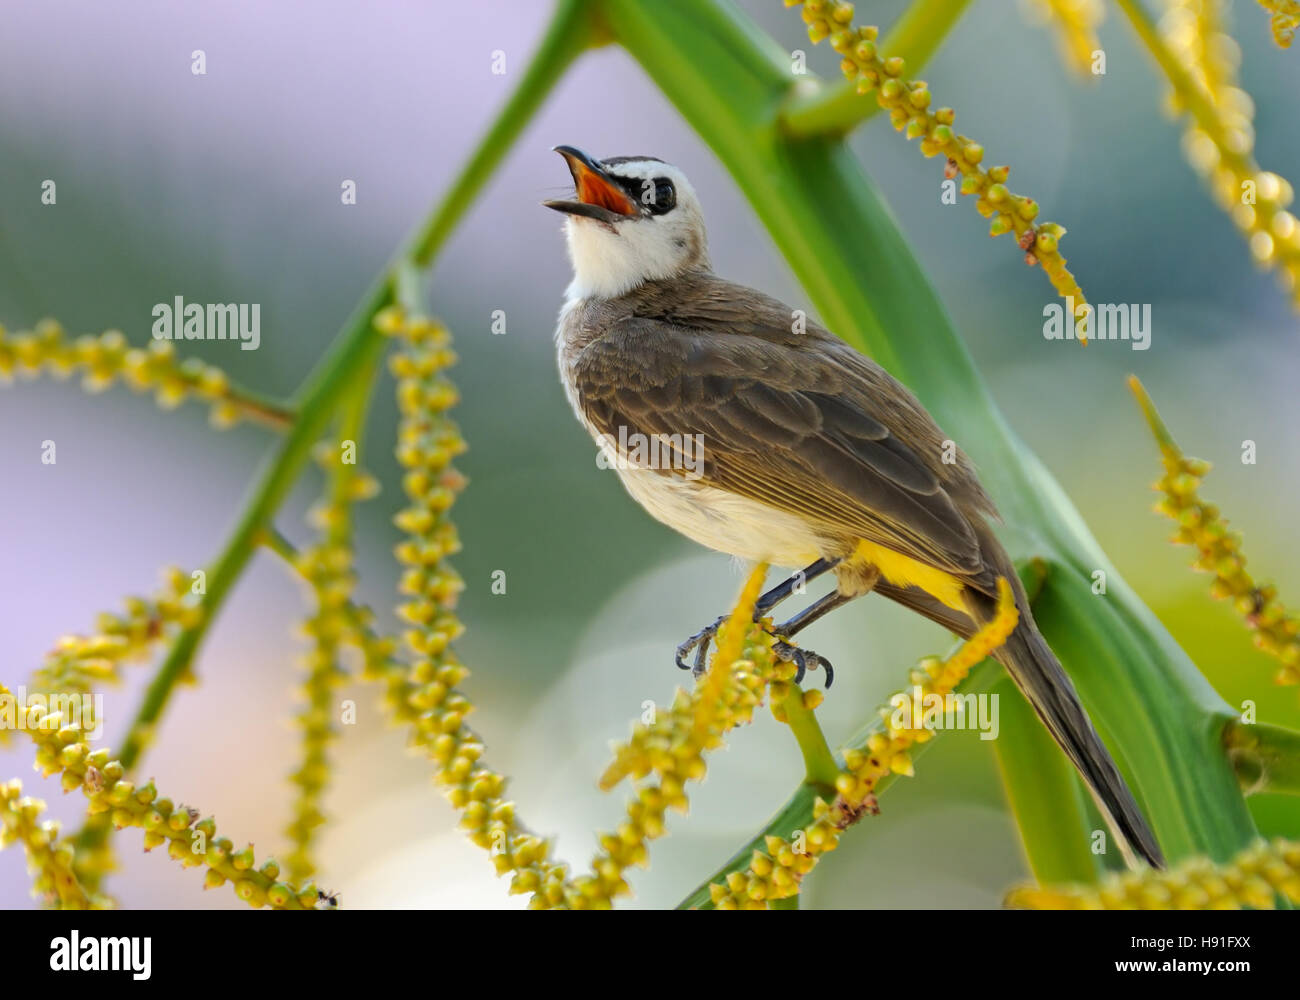 Yellow-vented Bulbul (Pycnonotus goiavier) at berry tree. Phuket island, Thailand Stock Photo